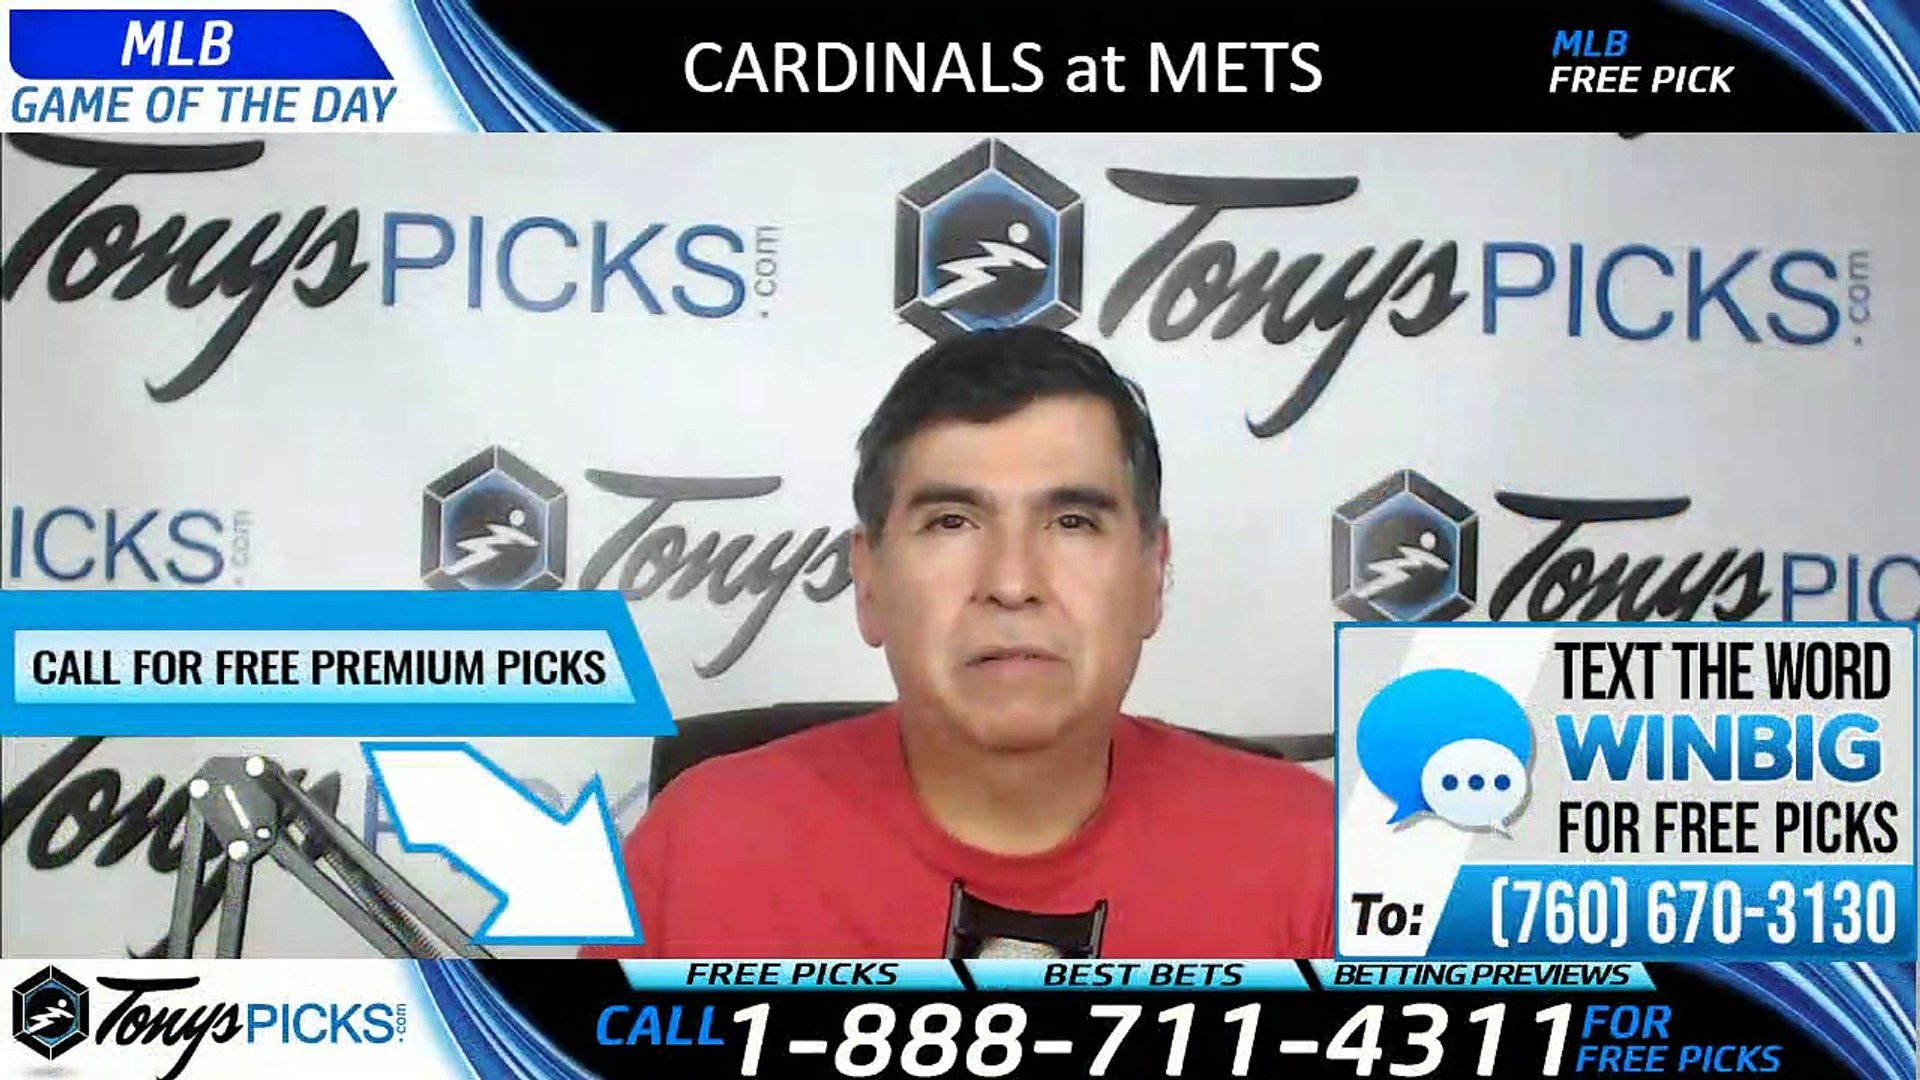 Saint Louis Cardinals vs New York Mets 6/13/2019 Picks Predictions Previews